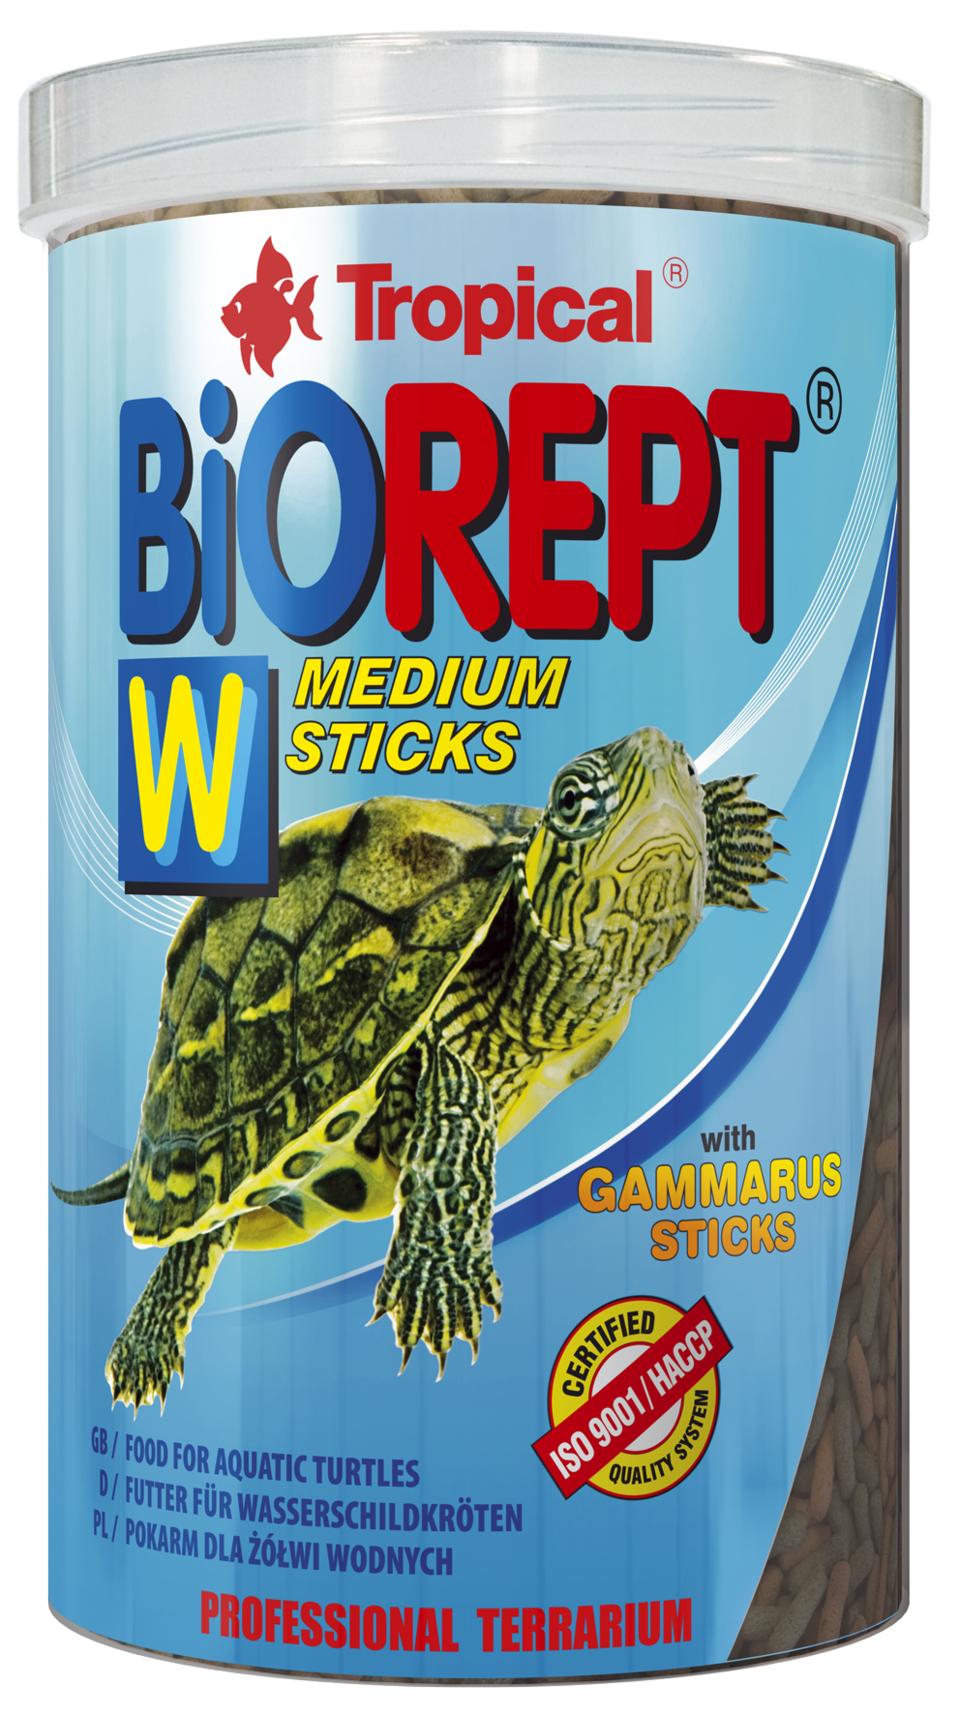 TROPICAL BioRept W 250ml Sticks bâtonnets à multi ingrédients tortues aquatiques